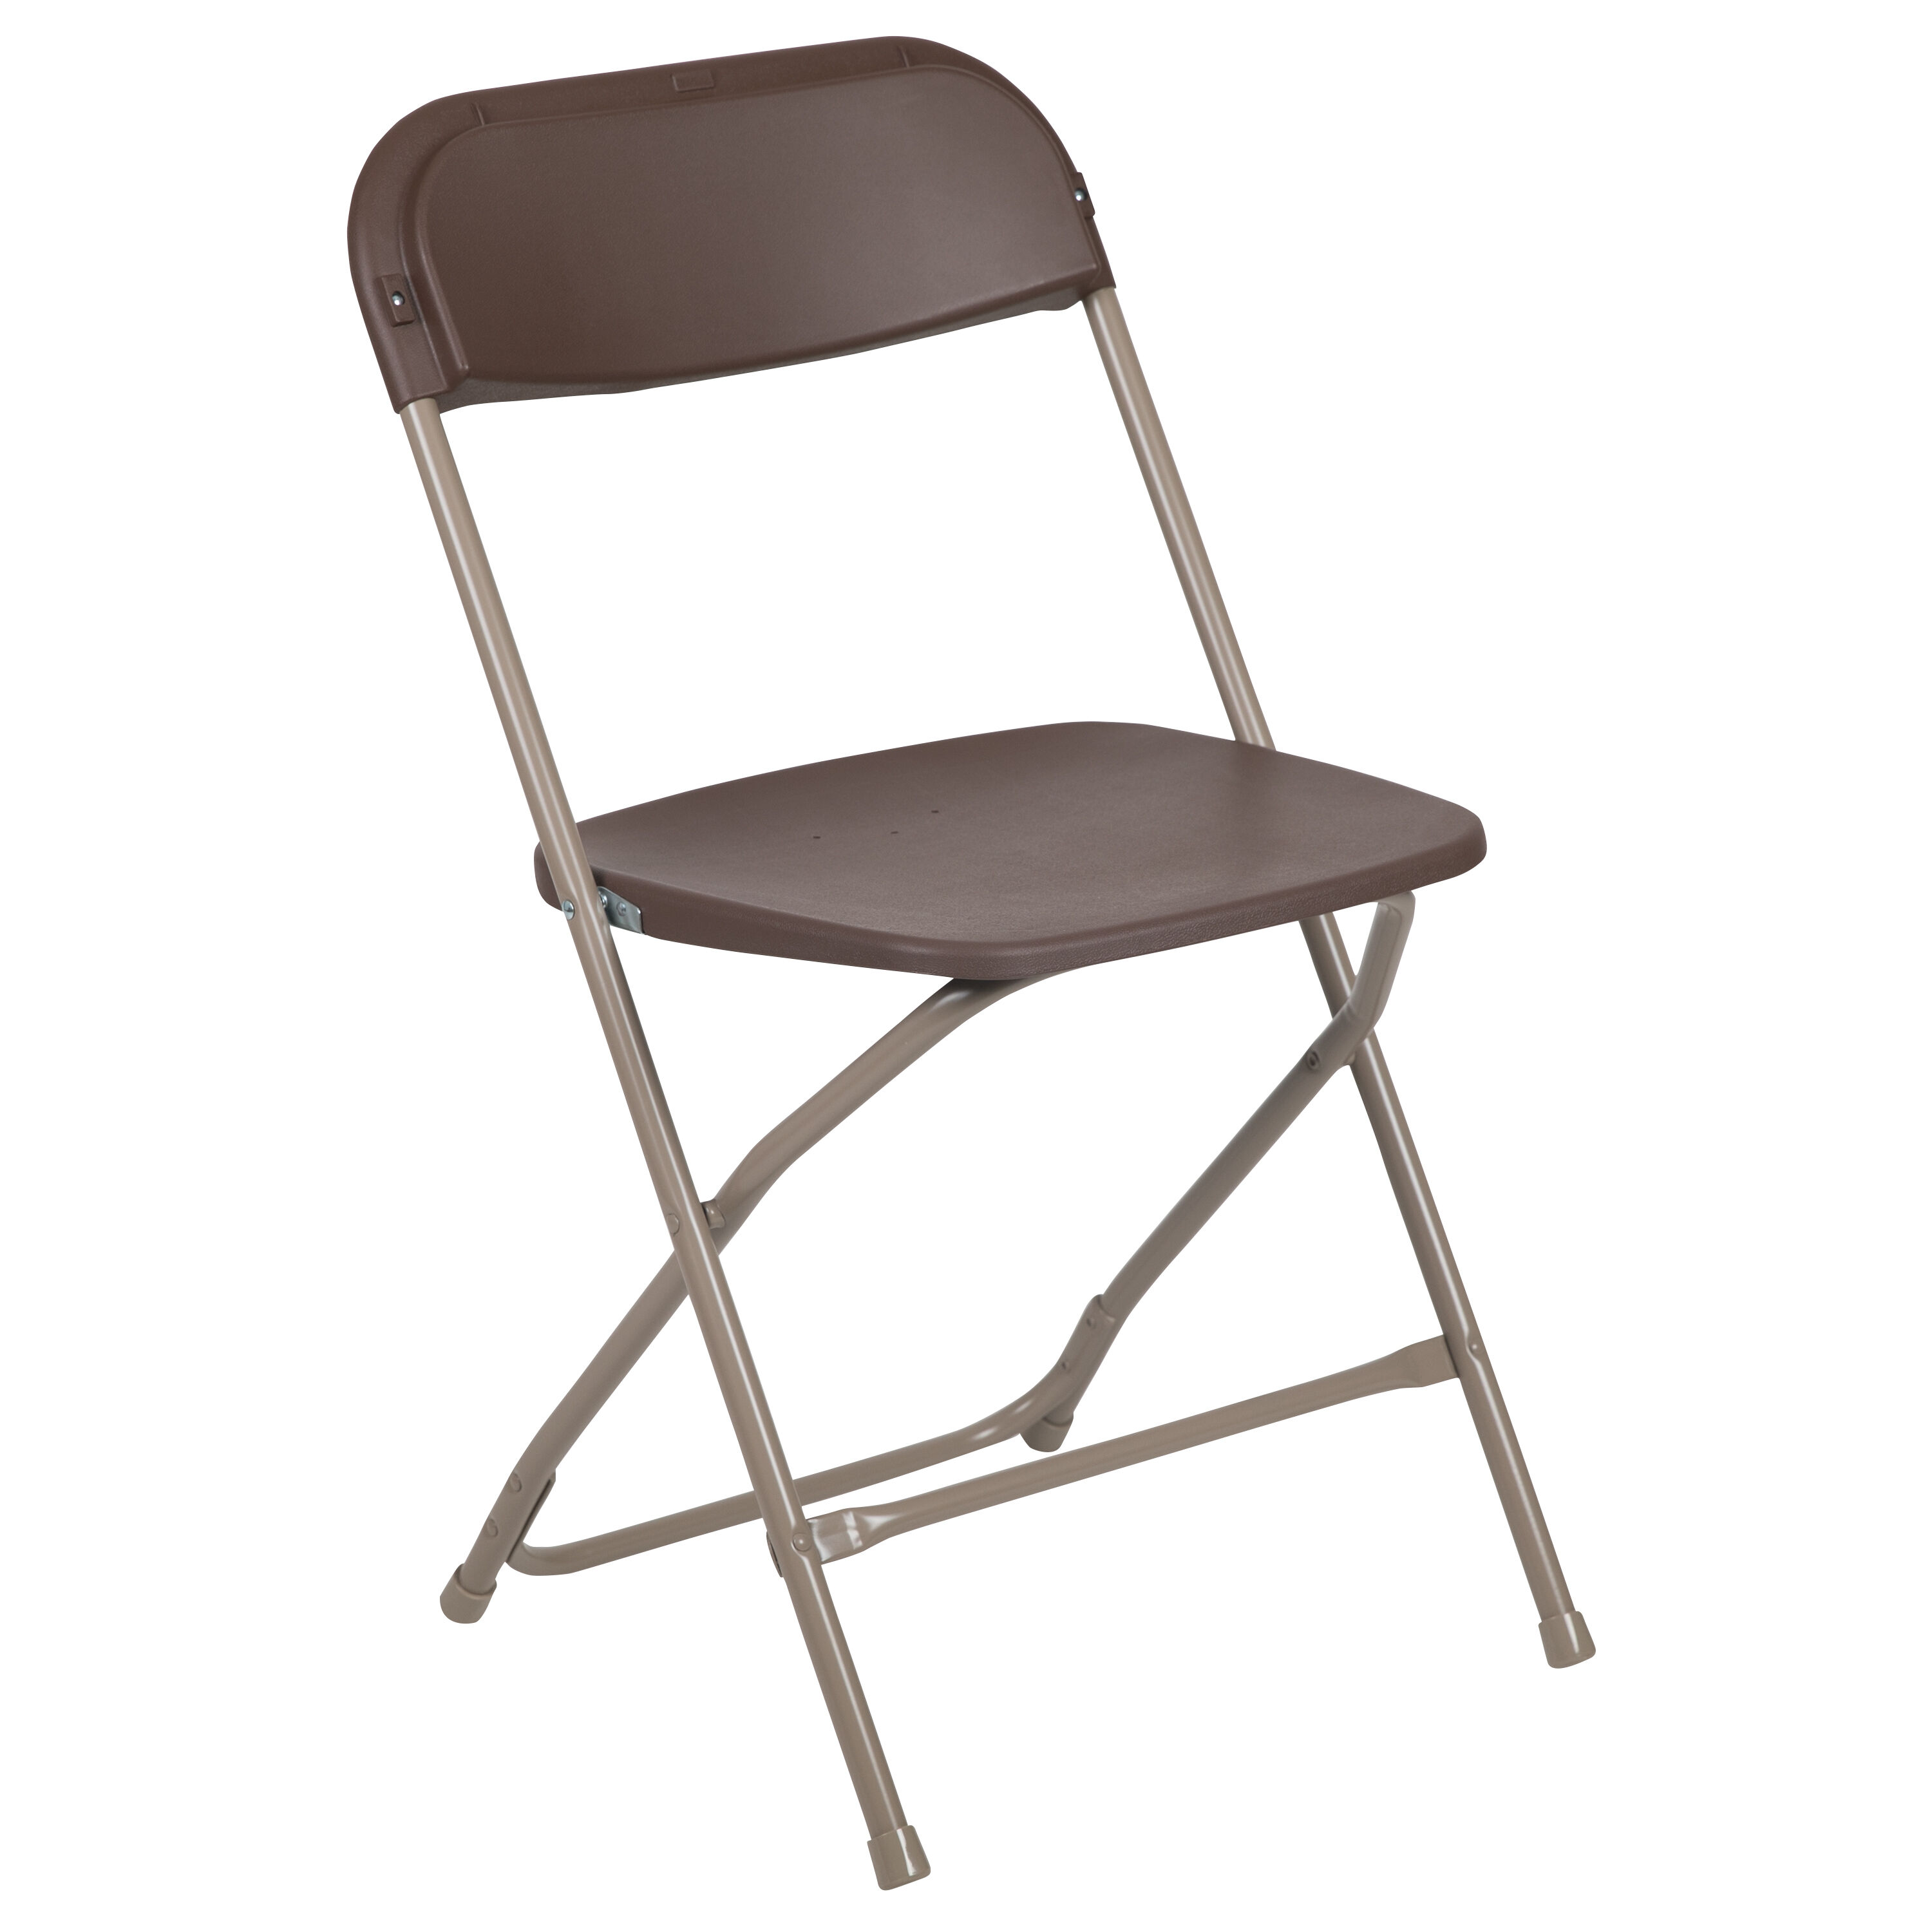 Beau Capacity Premium Brown Plastic Folding Chair Is On Sale Now. Tap To Expand